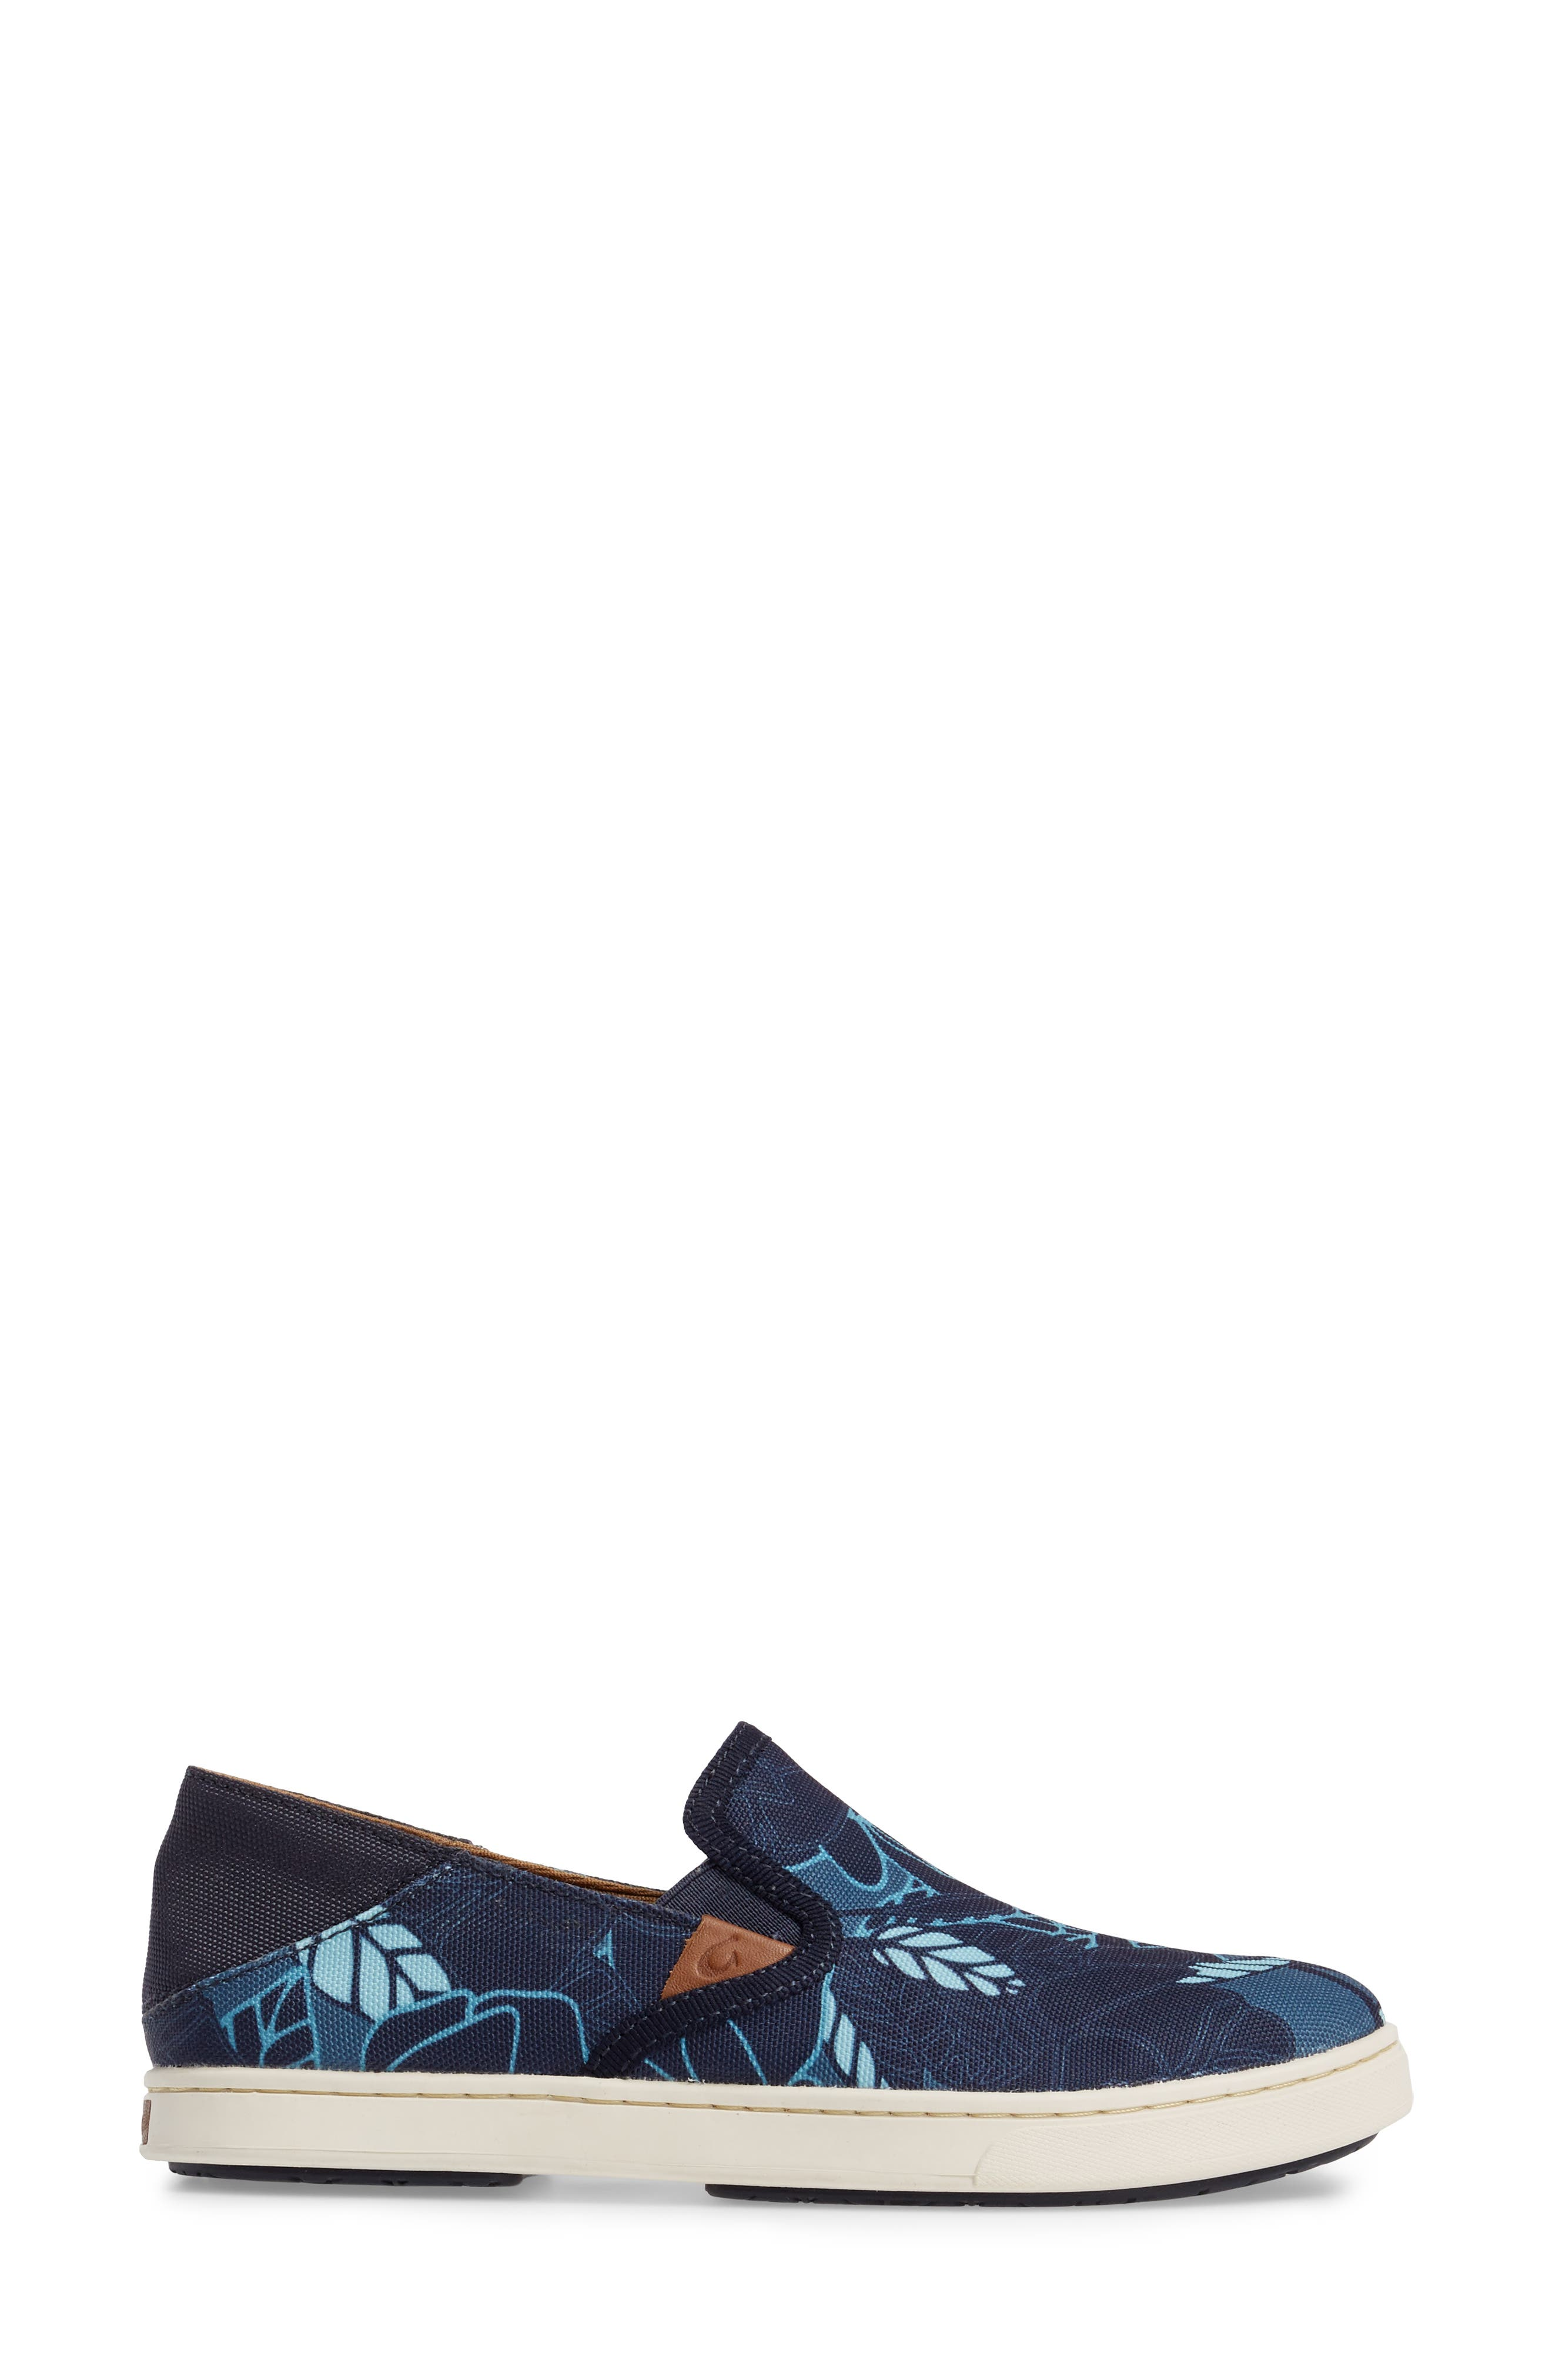 Pehuea Print Slip-On Sneaker,                             Alternate thumbnail 3, color,                             TRENCH BLUE/ STORMY BLUE